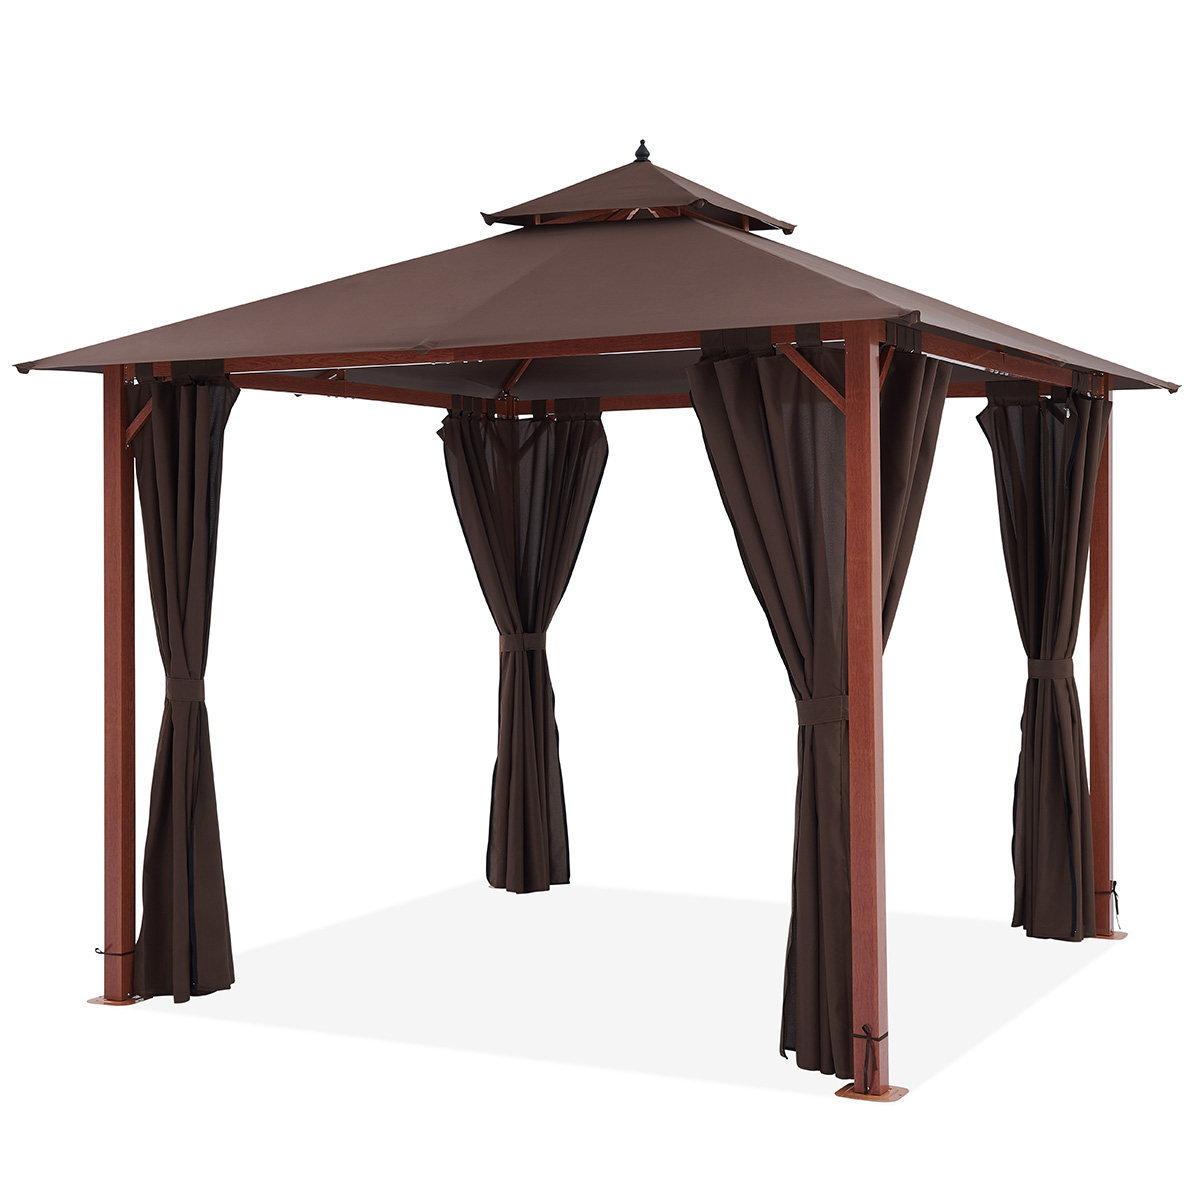 Fashionable Forestory Gazebo 3x3m – Gazebo – Outdoor Living – Outdoor With Regard To Canopy Patio Porch Swings With Pillows And Cup Holders (Gallery 28 of 30)